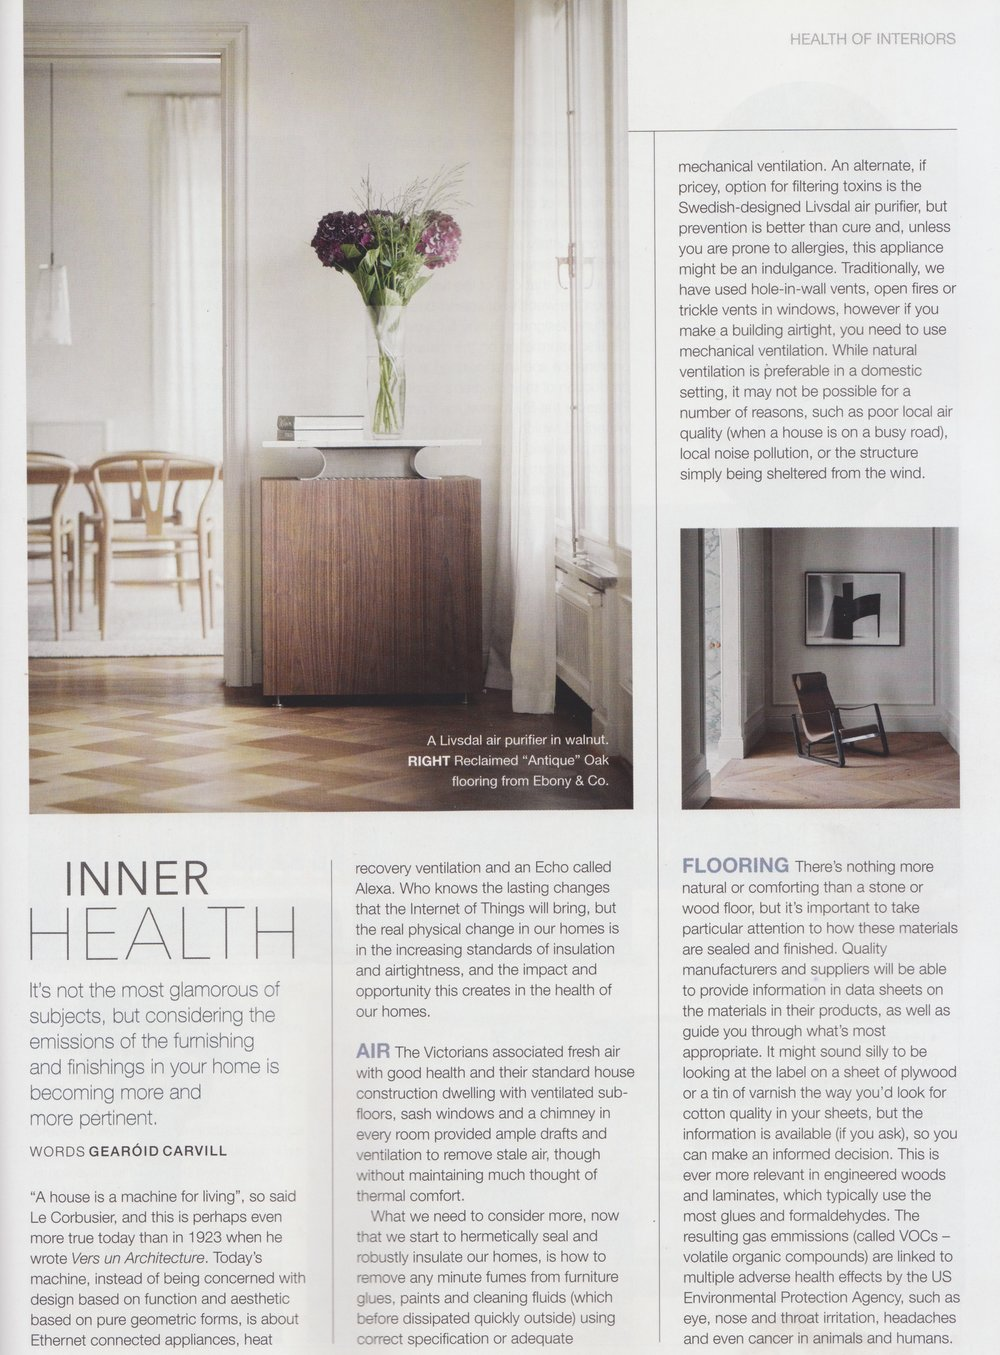 Inner Health P1 - Image Interiors.jpeg